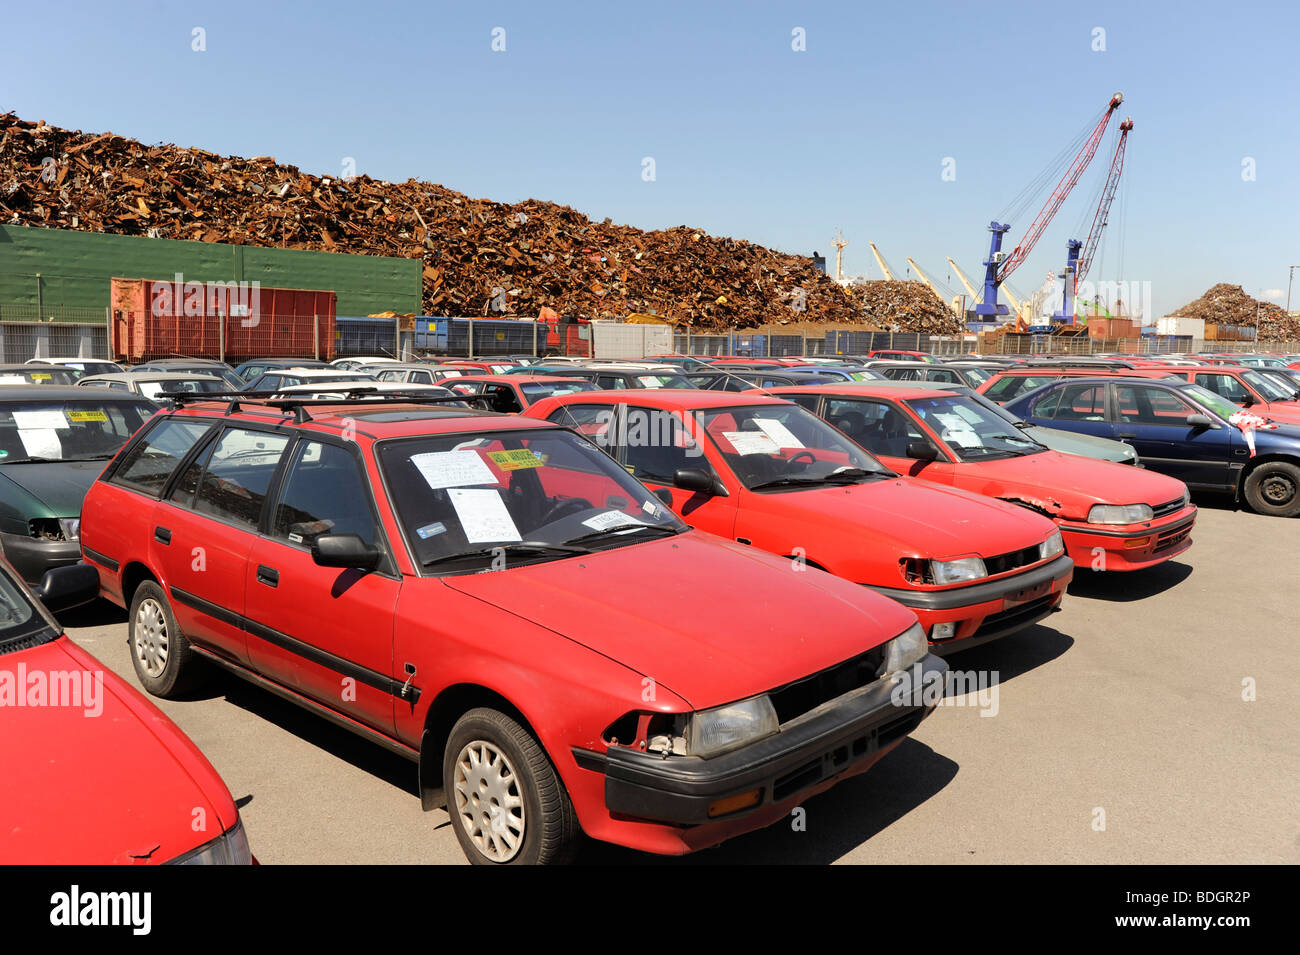 Cash For Clunkers >> Germany Hamburg , used old cars await export to africa Cotonou Benin Stock Photo: 25570238 - Alamy